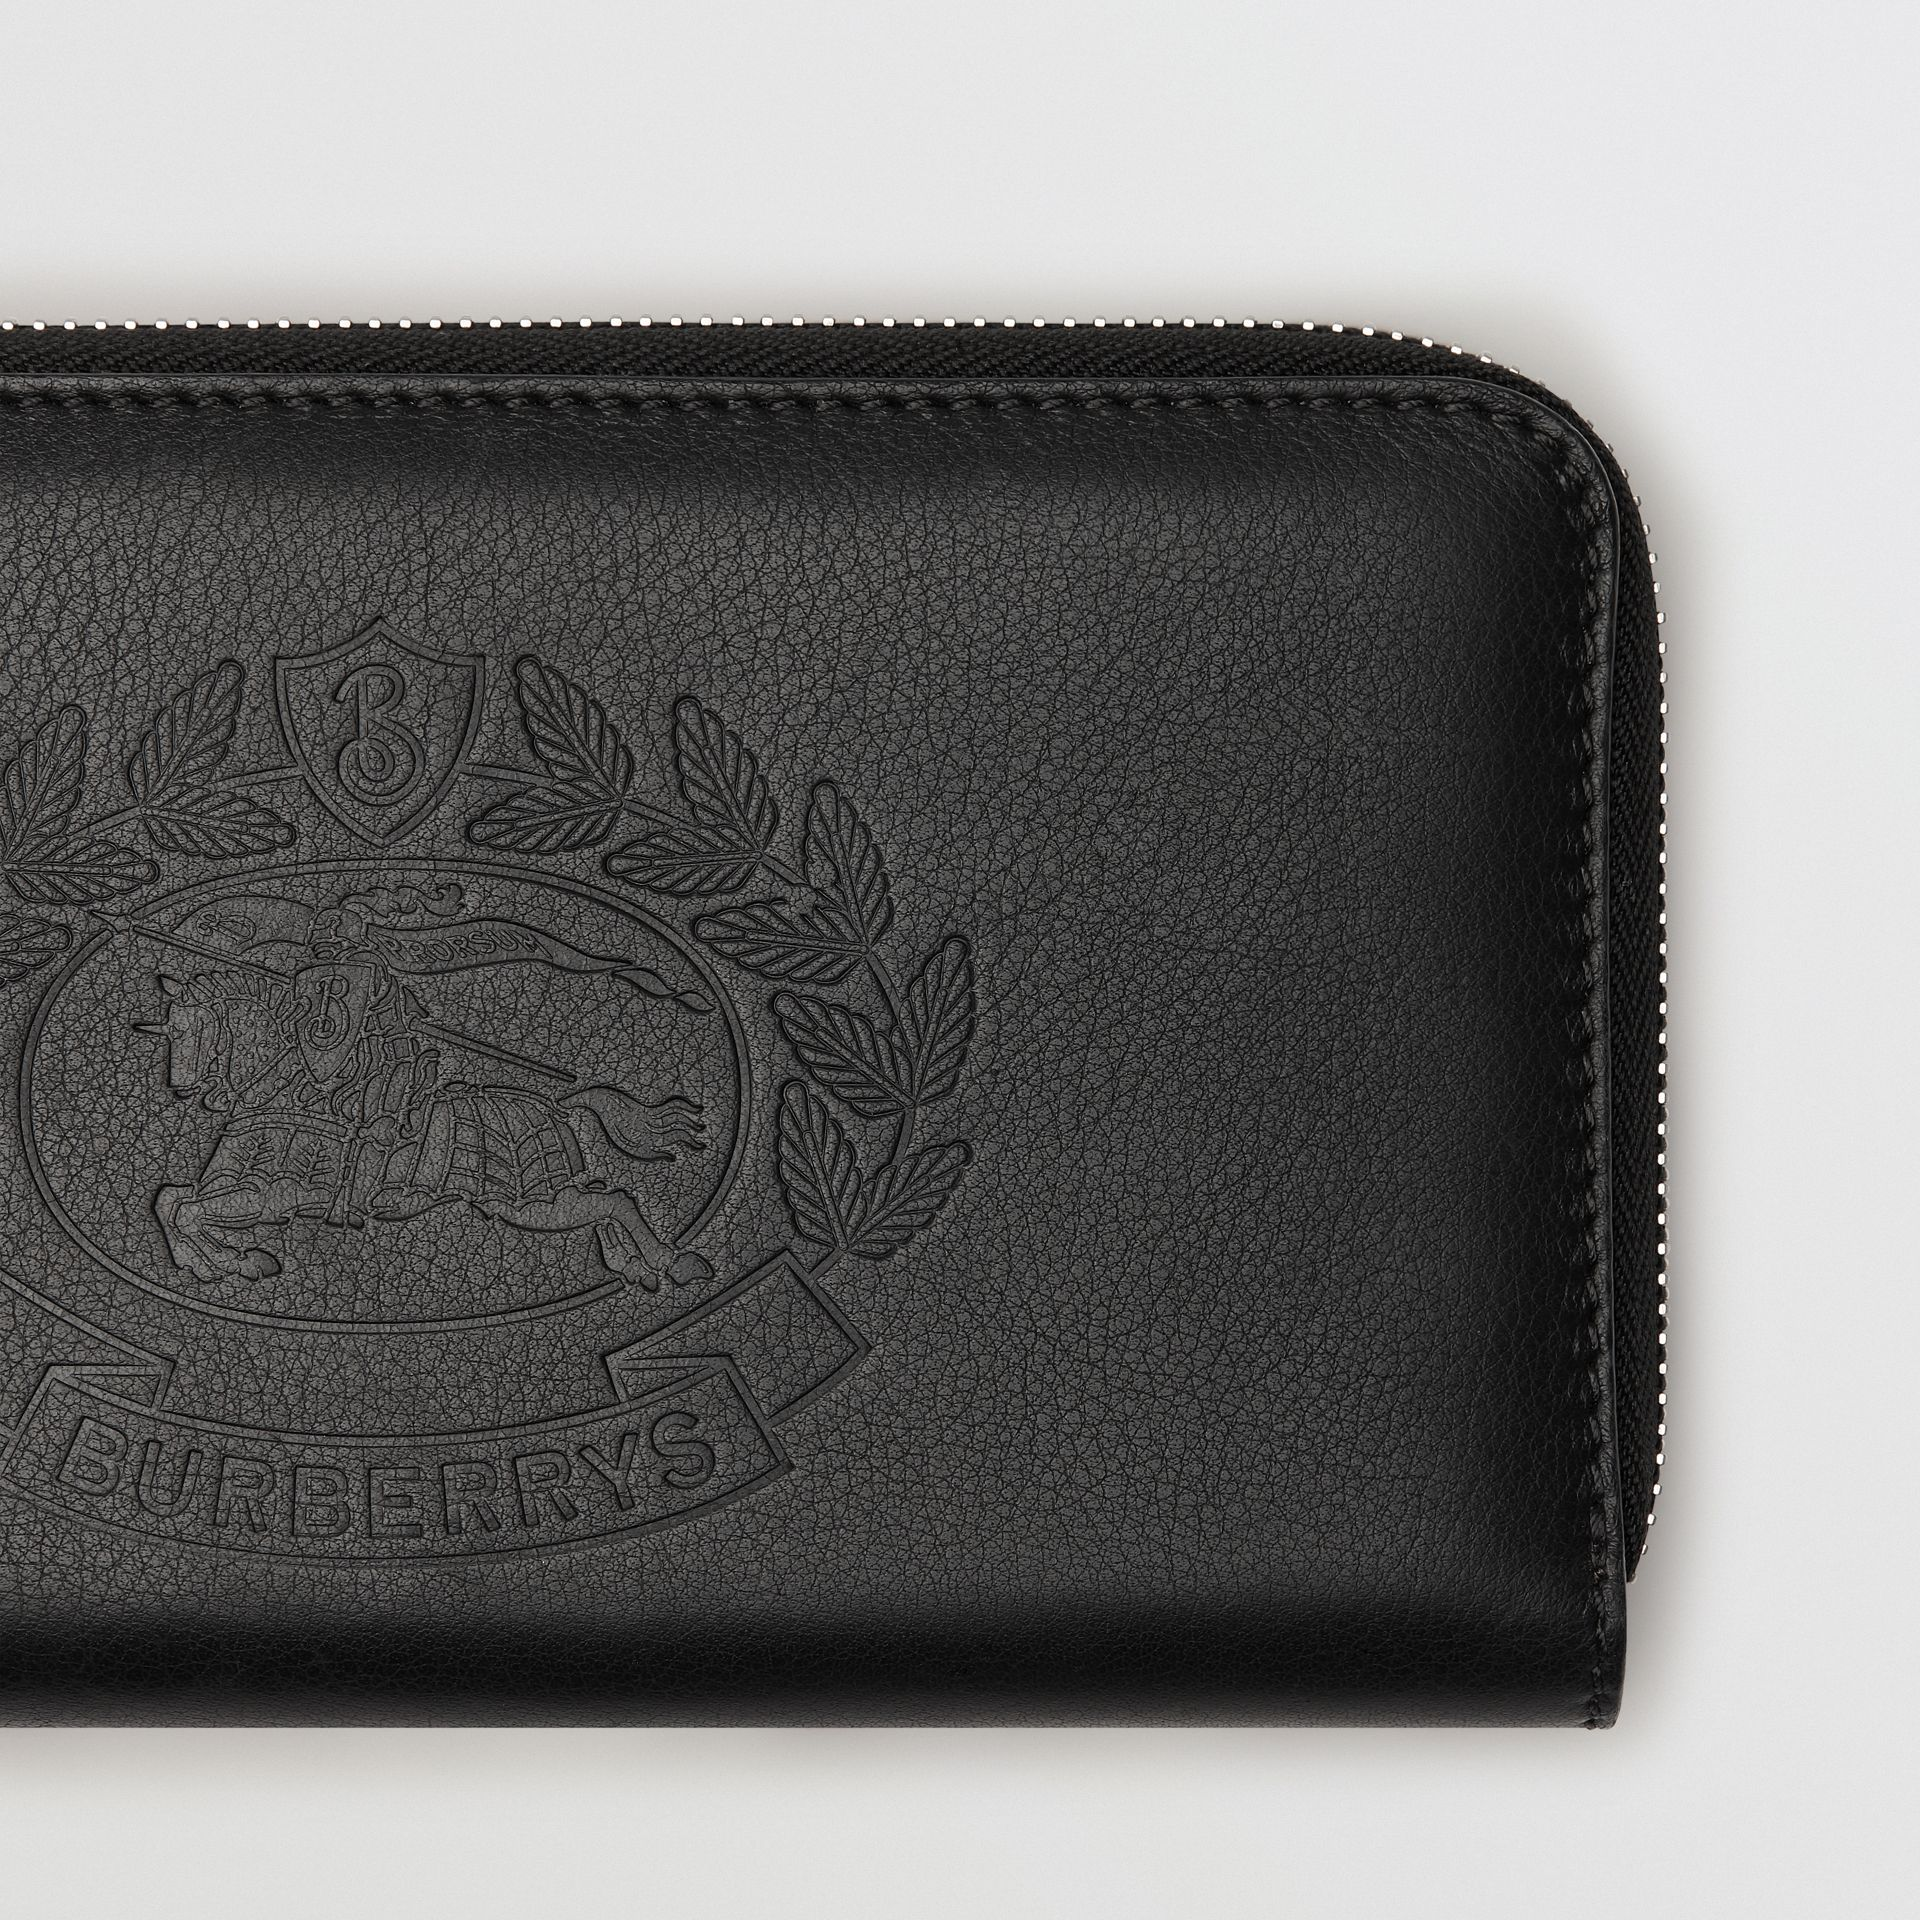 Embossed Crest Two-tone Leather Ziparound Wallet in Black - Women | Burberry - gallery image 1